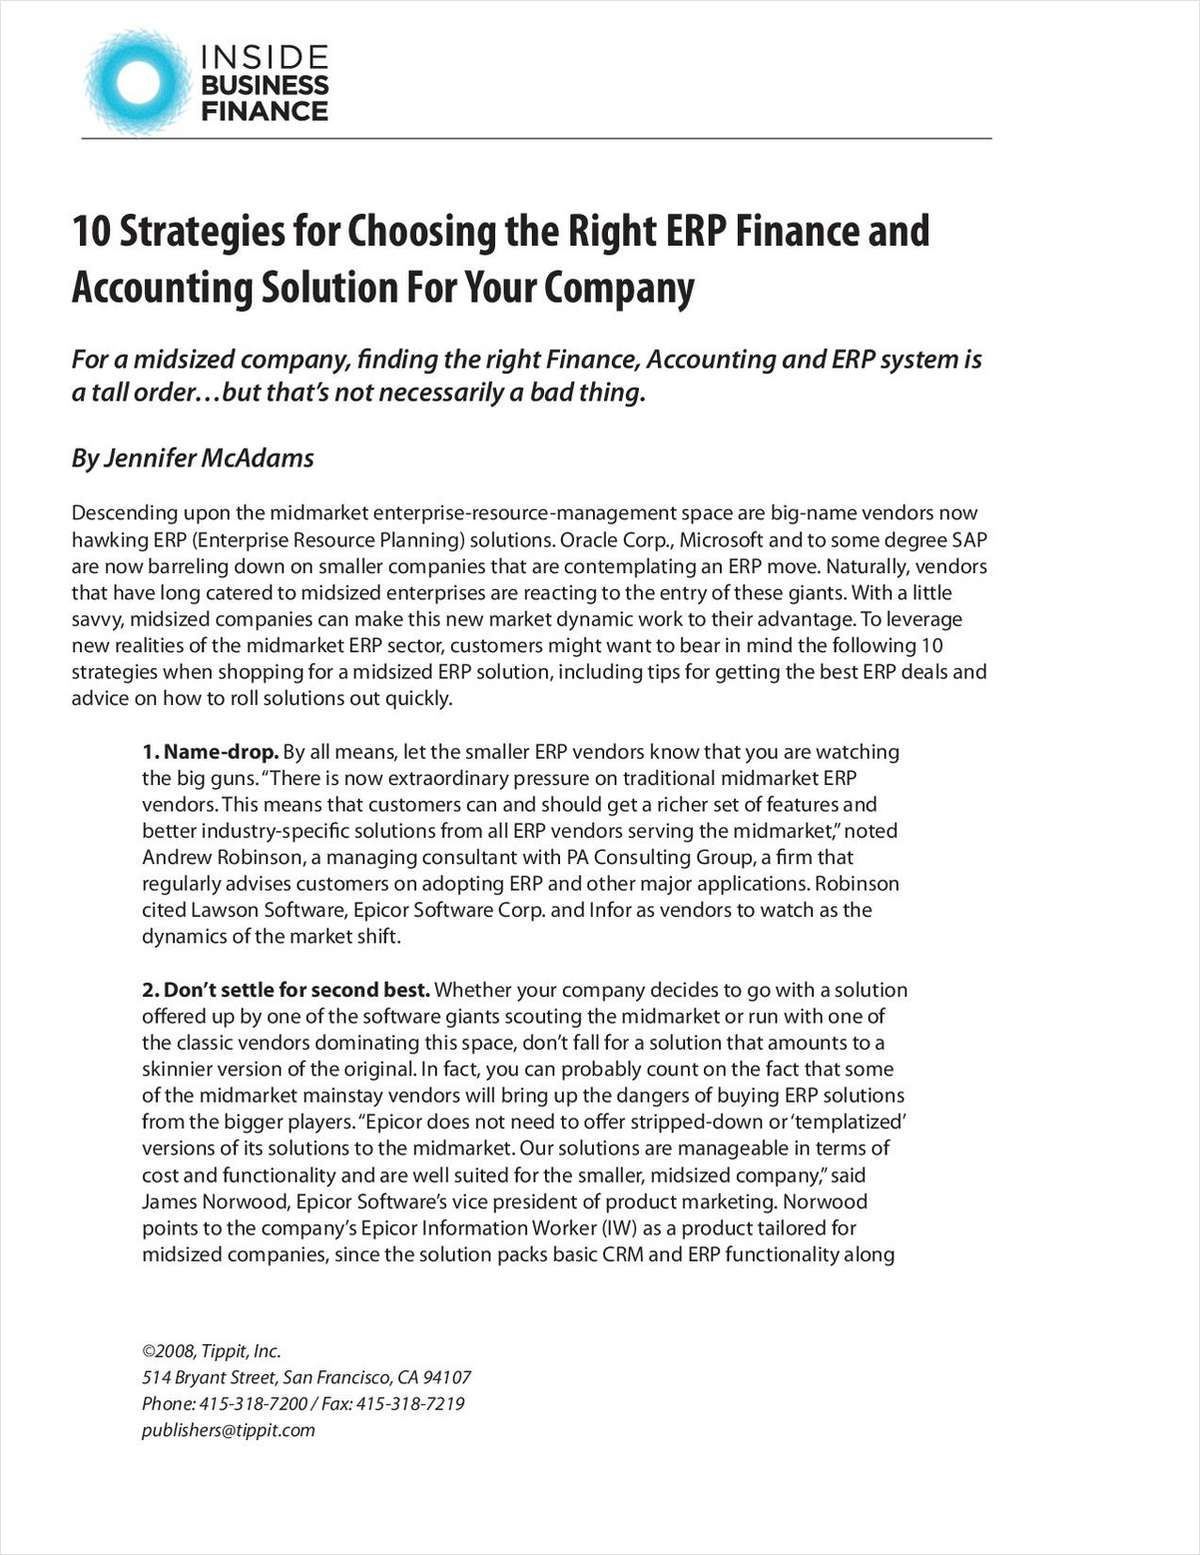 10 Strategies for Choosing the Right ERP Finance and Accounting Solution For Your Company